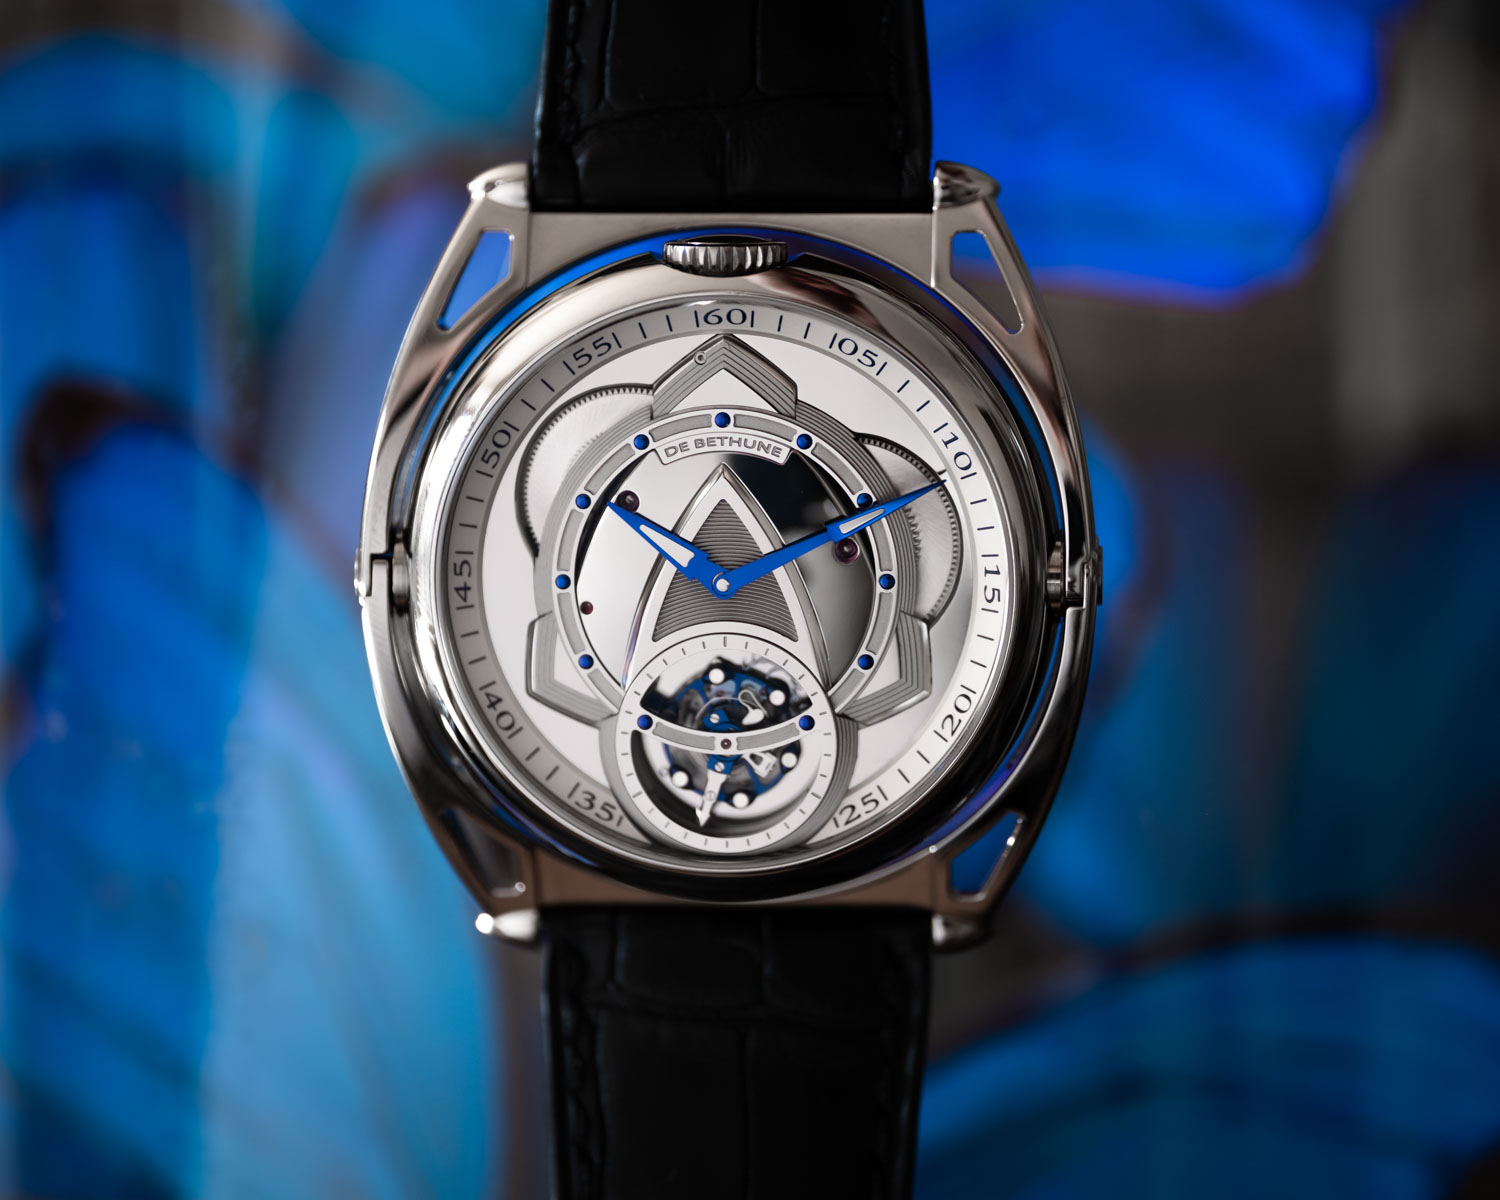 The first side of the De Bethune DB Kind of Two Tourbillon features a DB28 Tourbillon type of a face featuring Denis Flageollet's patented tourbillon, which beats at 36,000 vibrations per hour